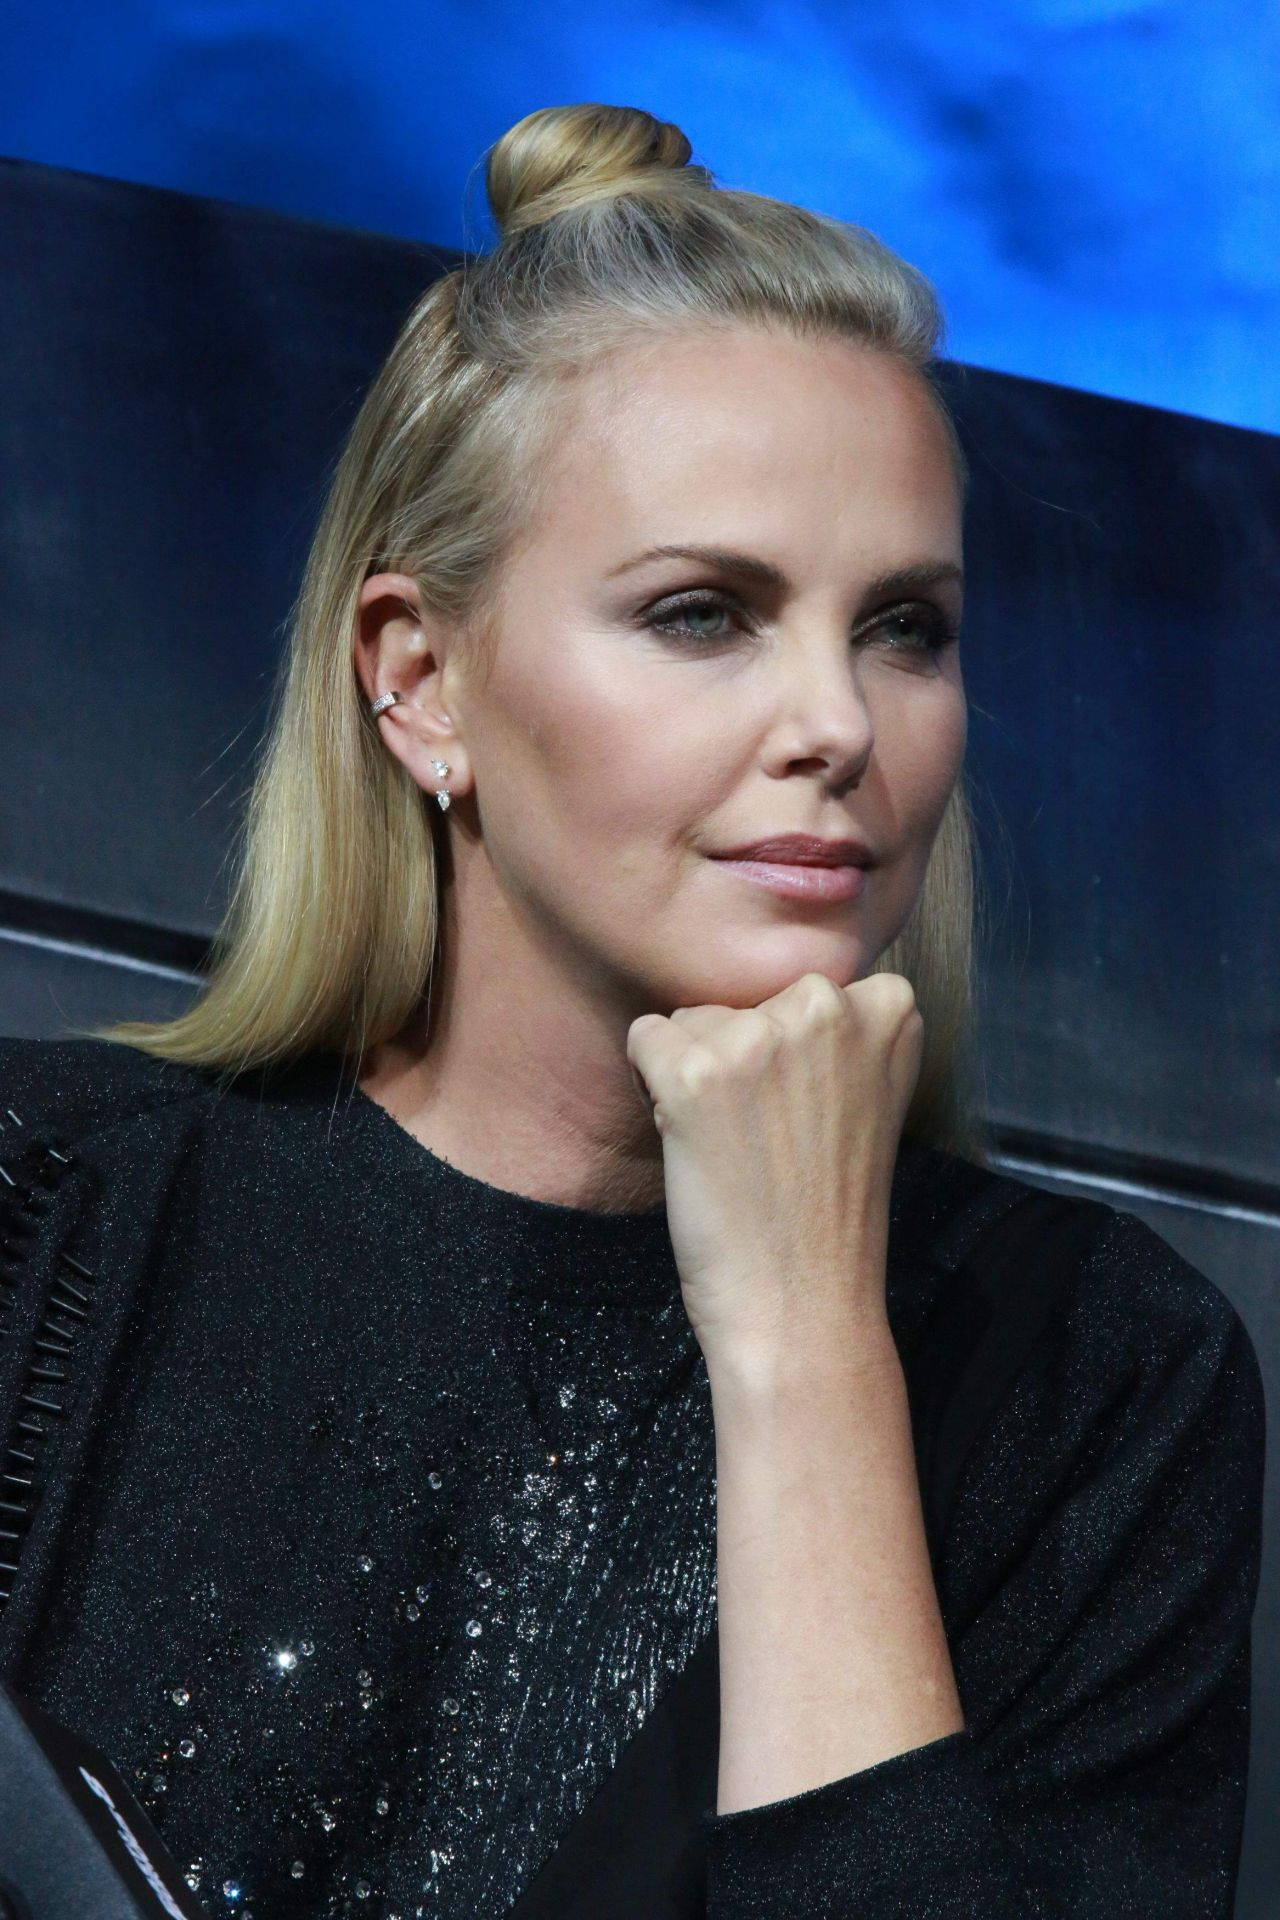 Charlize Theron - The Fate of the Furious Press Conference ... Charlize Theron